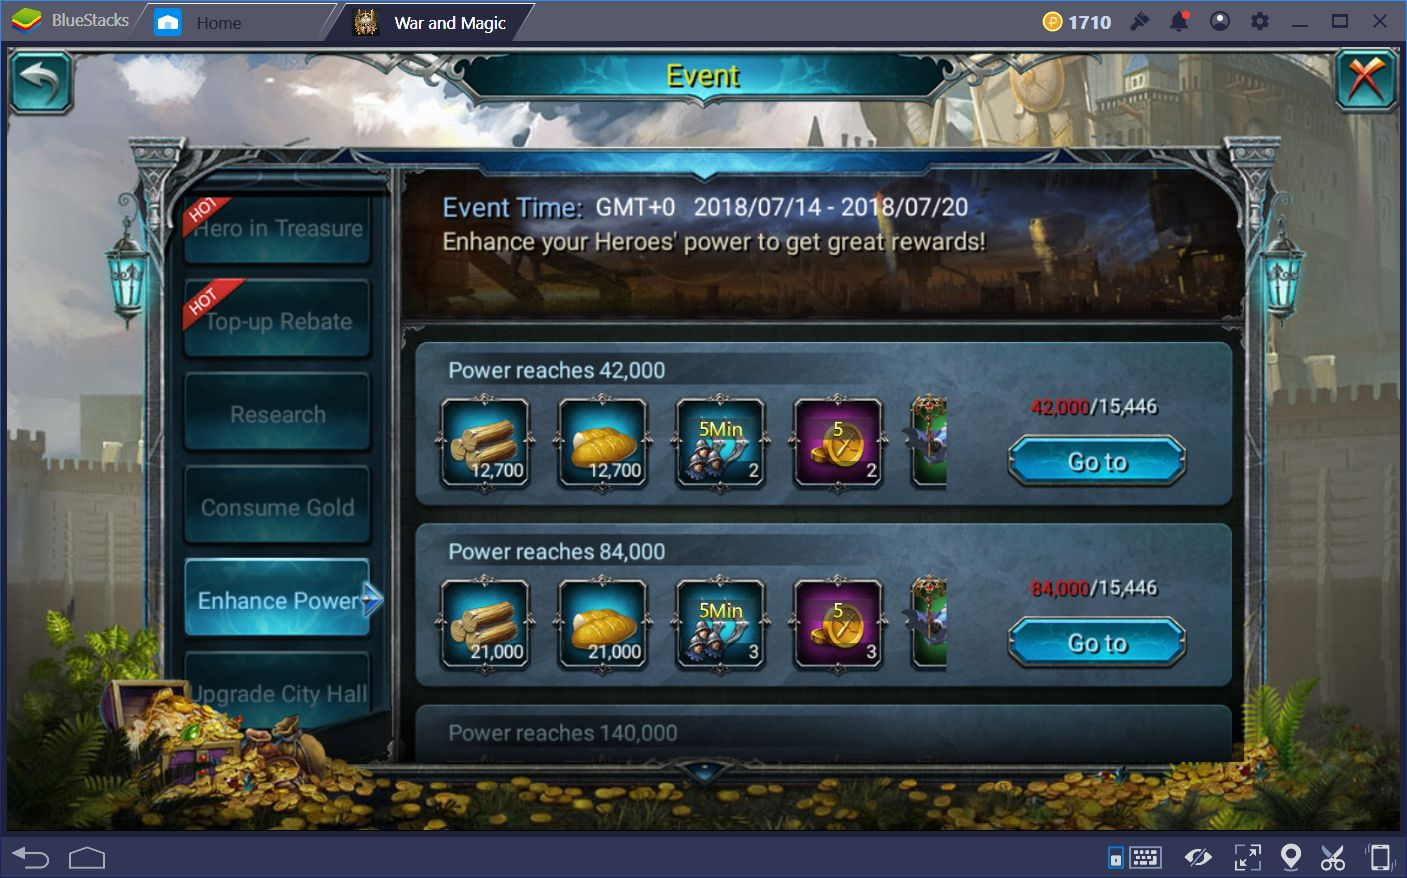 A Guide to the New Server Carnival in War and Magic